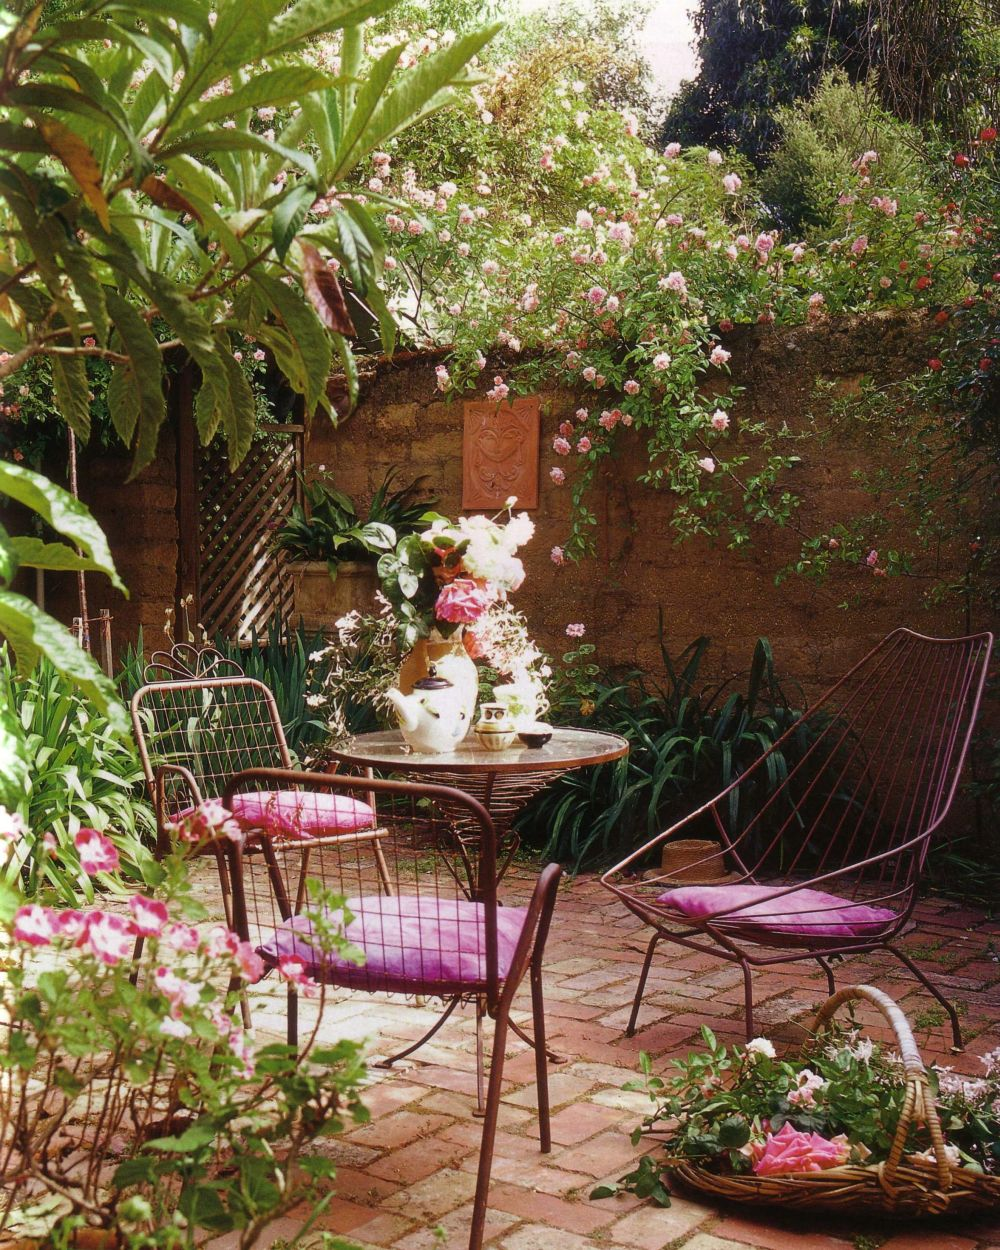 French courtyard gardens home ideas 2016 for Courtyard garden ideas